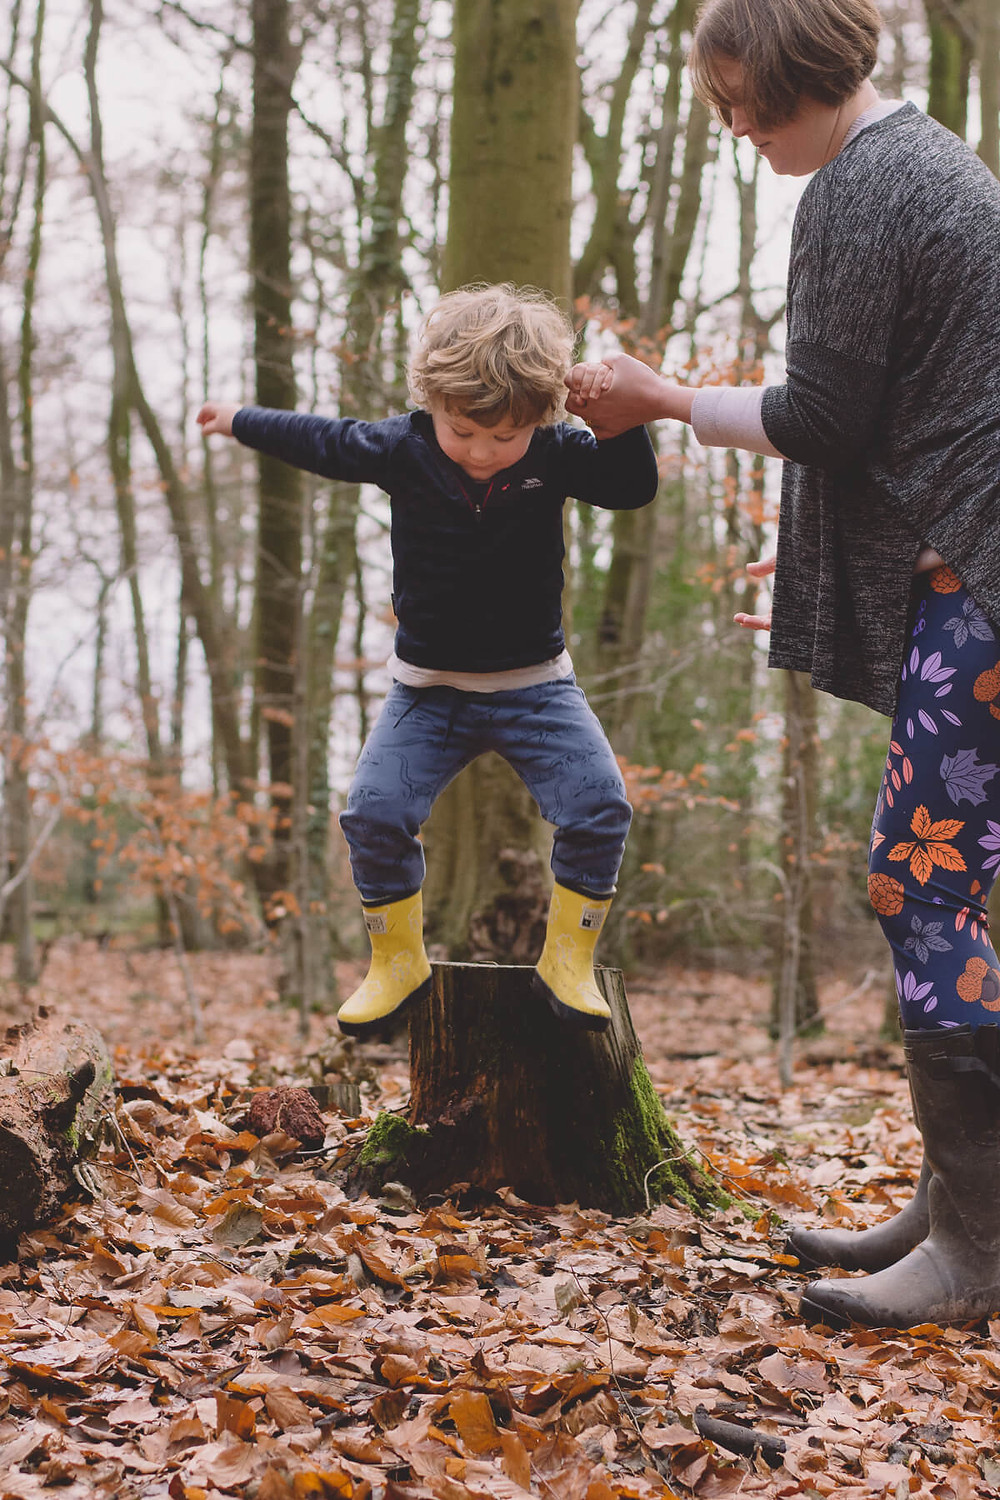 boy jumping off tree stump holding mums hand south wales